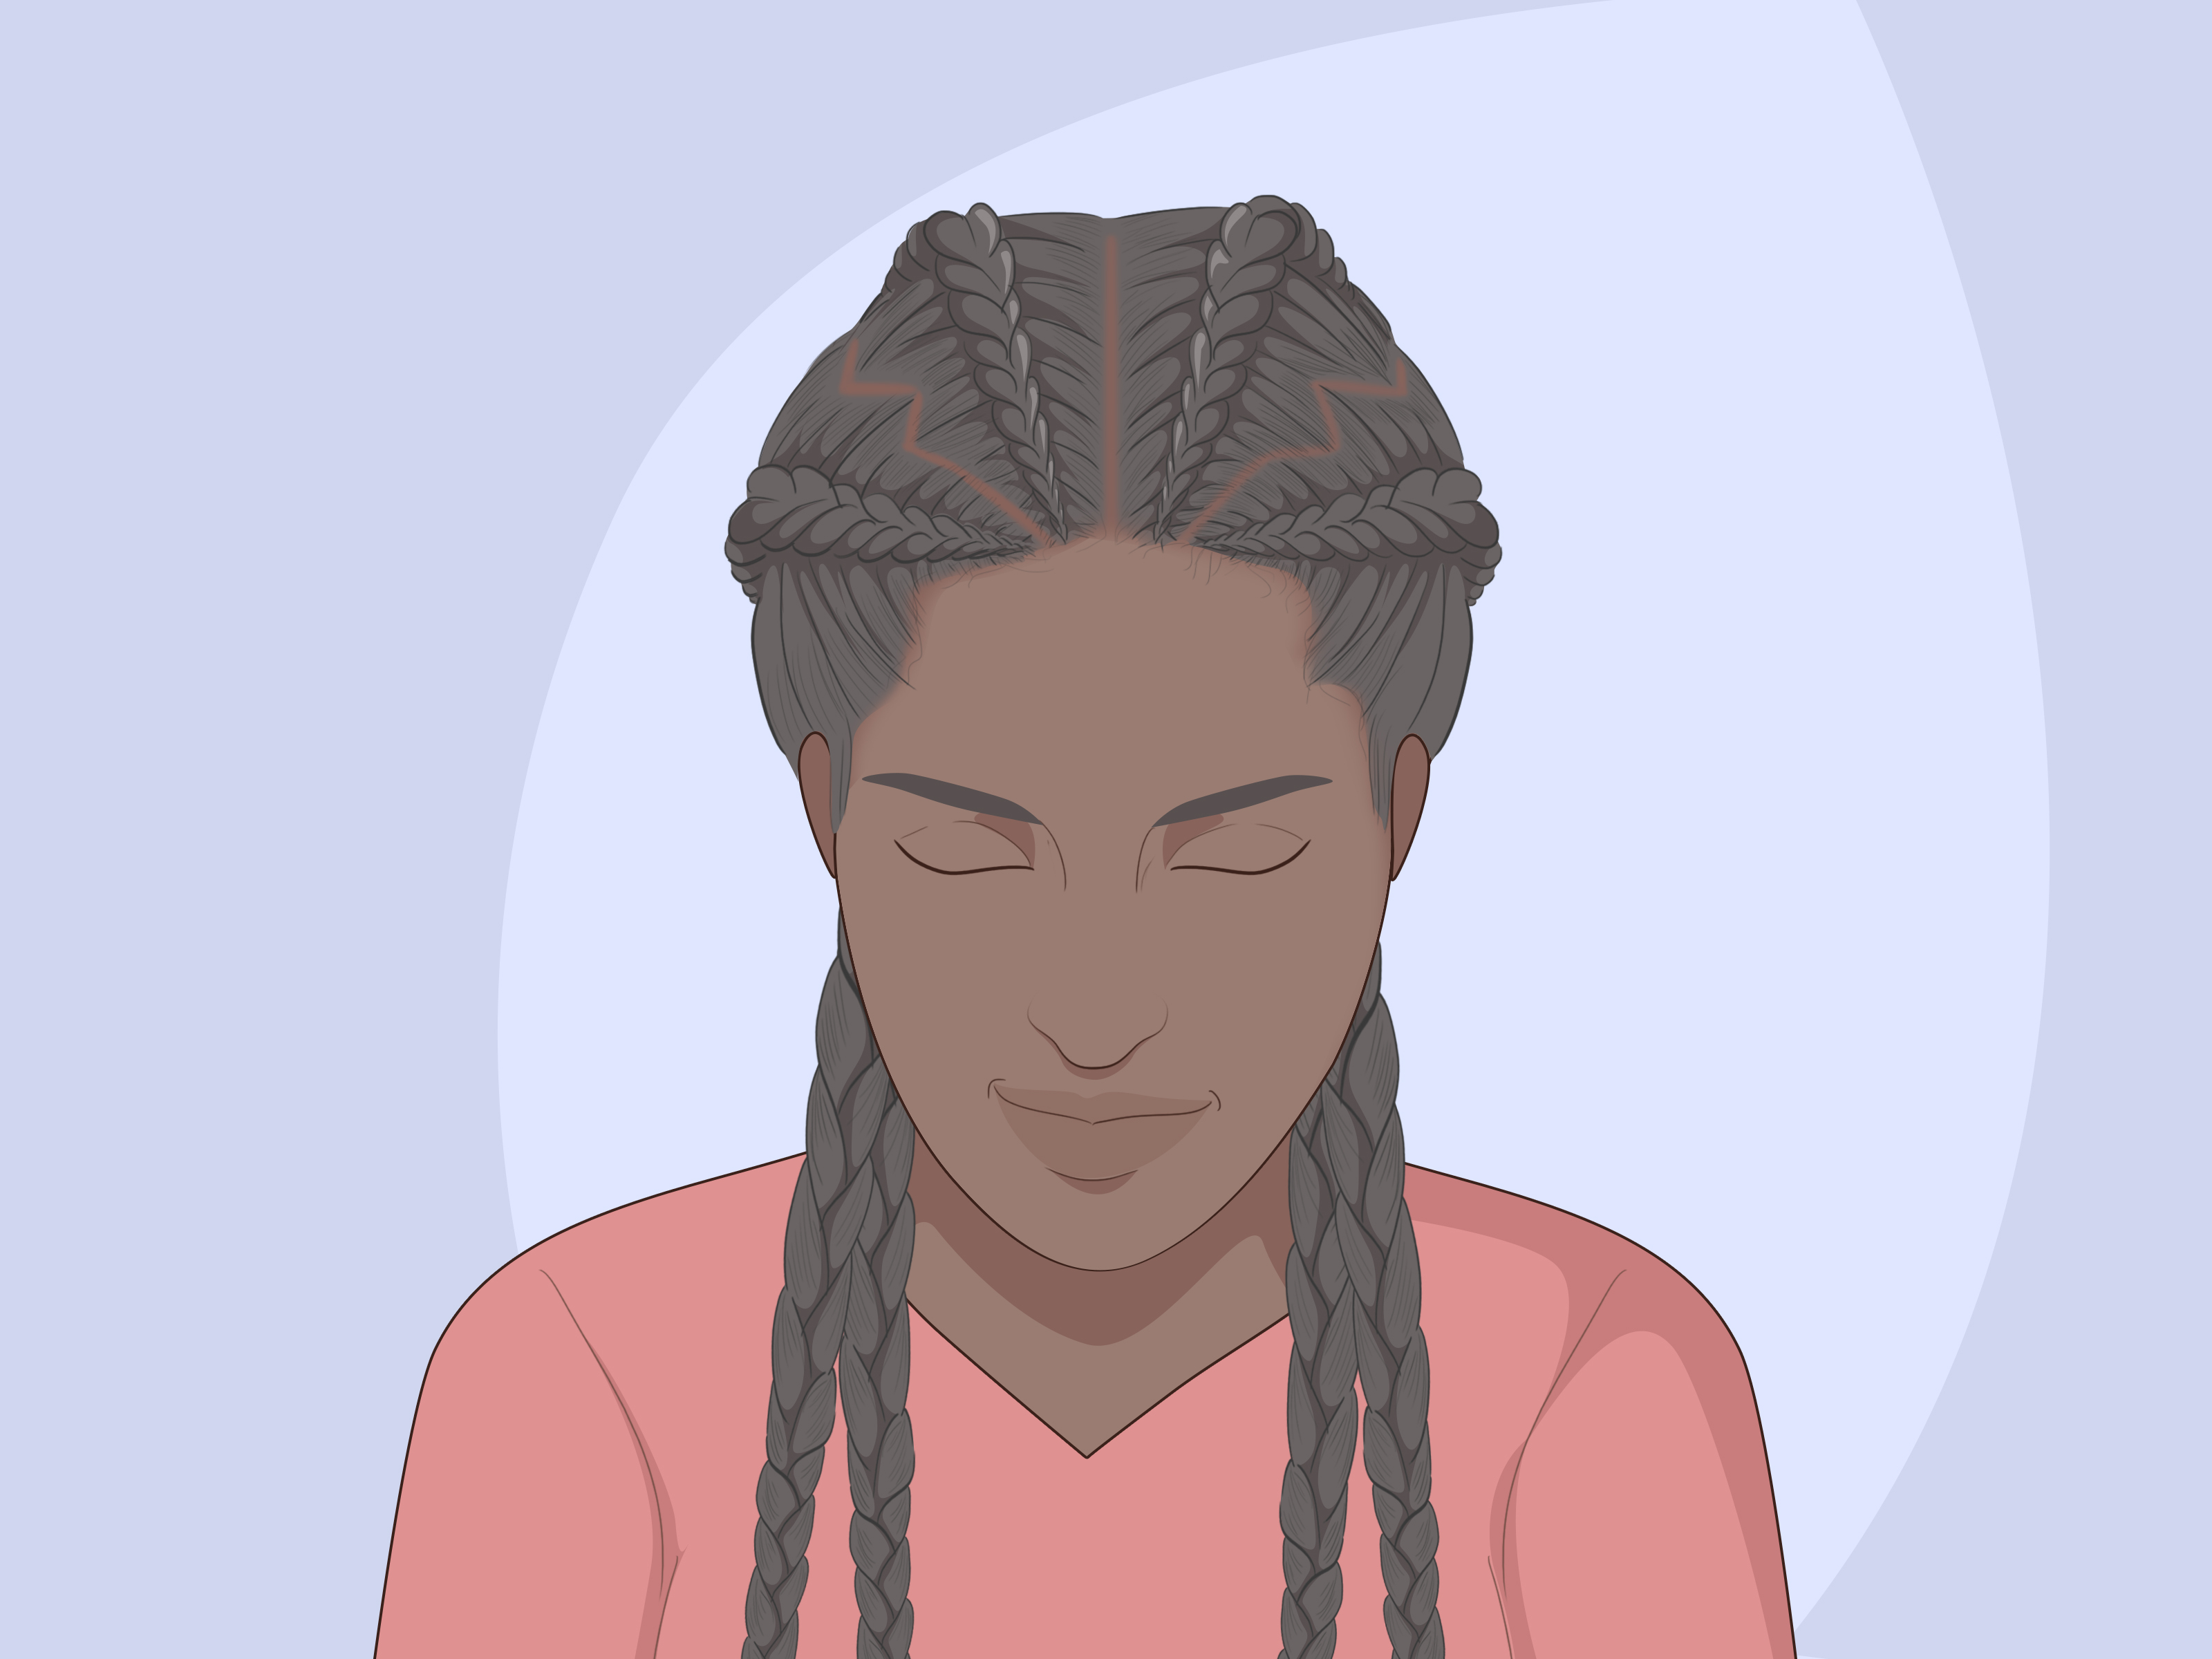 How To Braid Cornrows: 11 Steps (With Pictures) – Wikihow Intended For Most Current Back And Forth Skinny Braided Hairstyles (View 4 of 20)